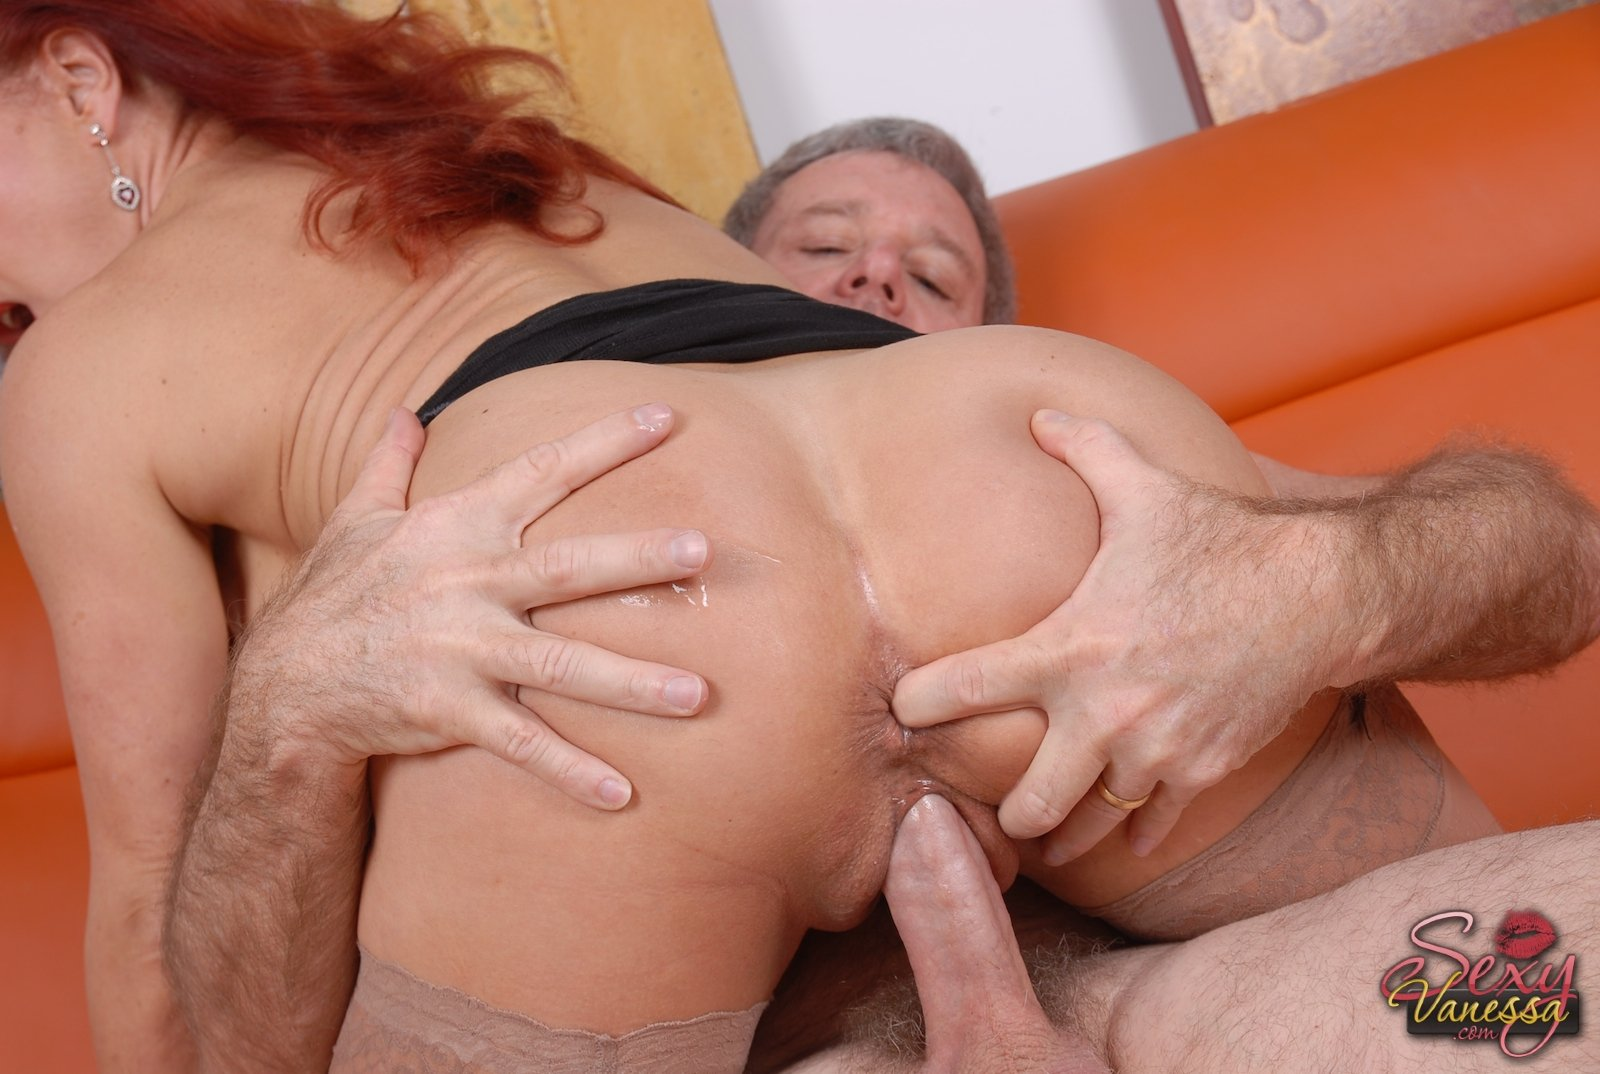 Wife spanking hard sexy mature business woman